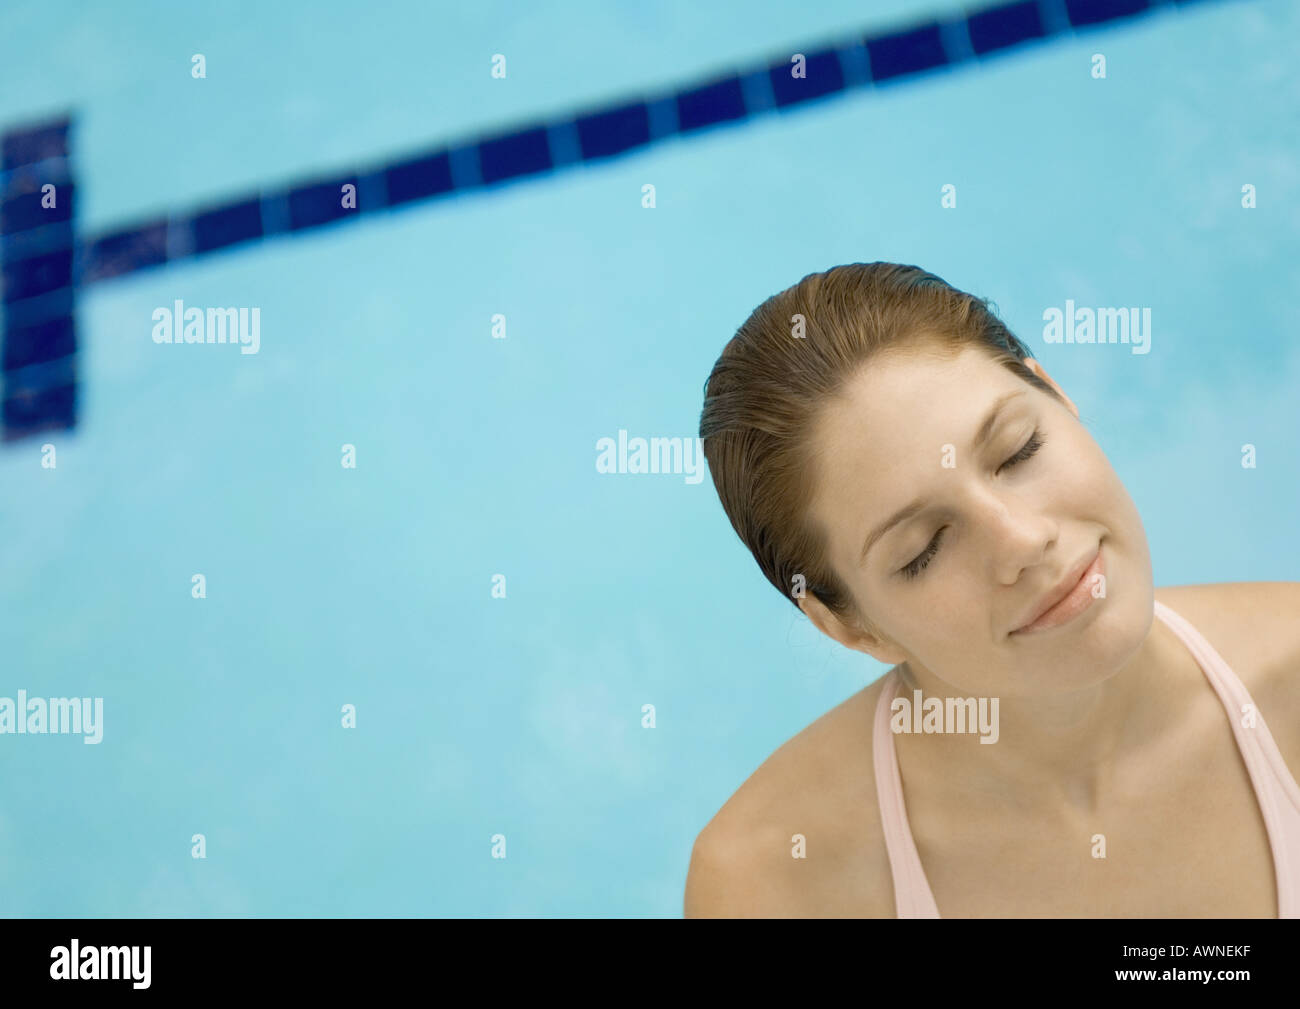 Woman standing by pool, eyes closed and head tilted - Stock Image